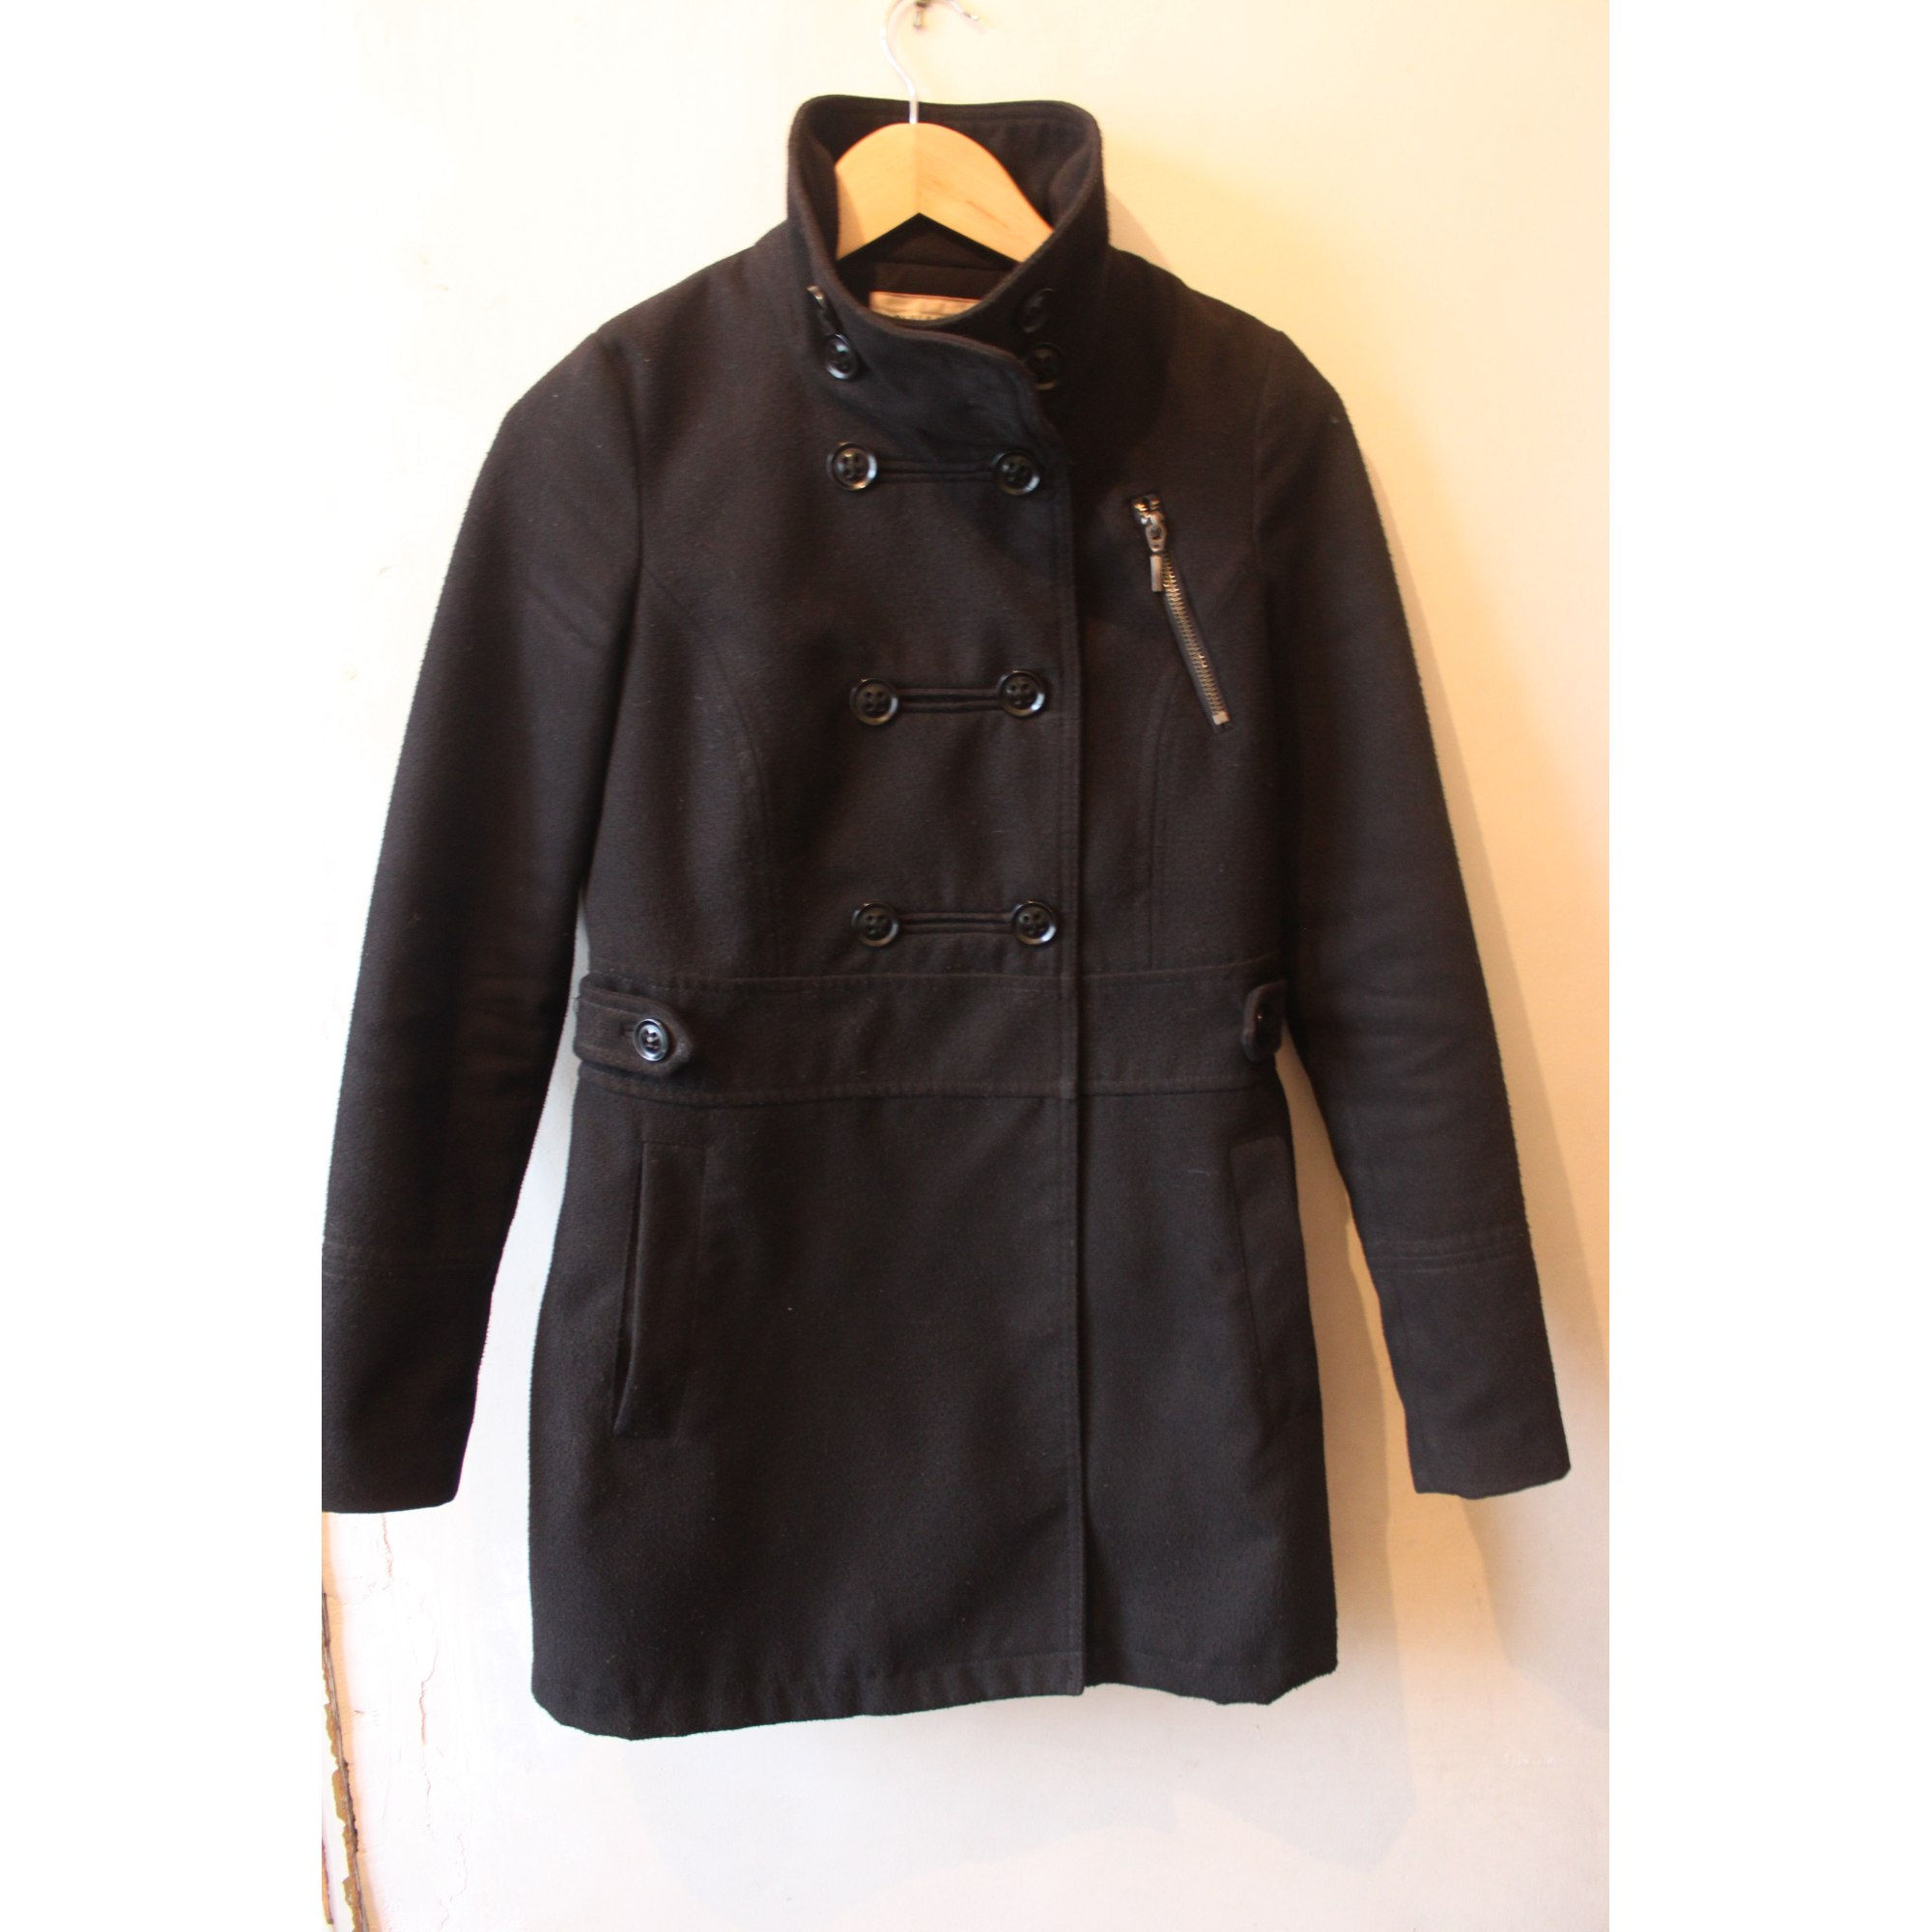 Manteau gris pull and bear